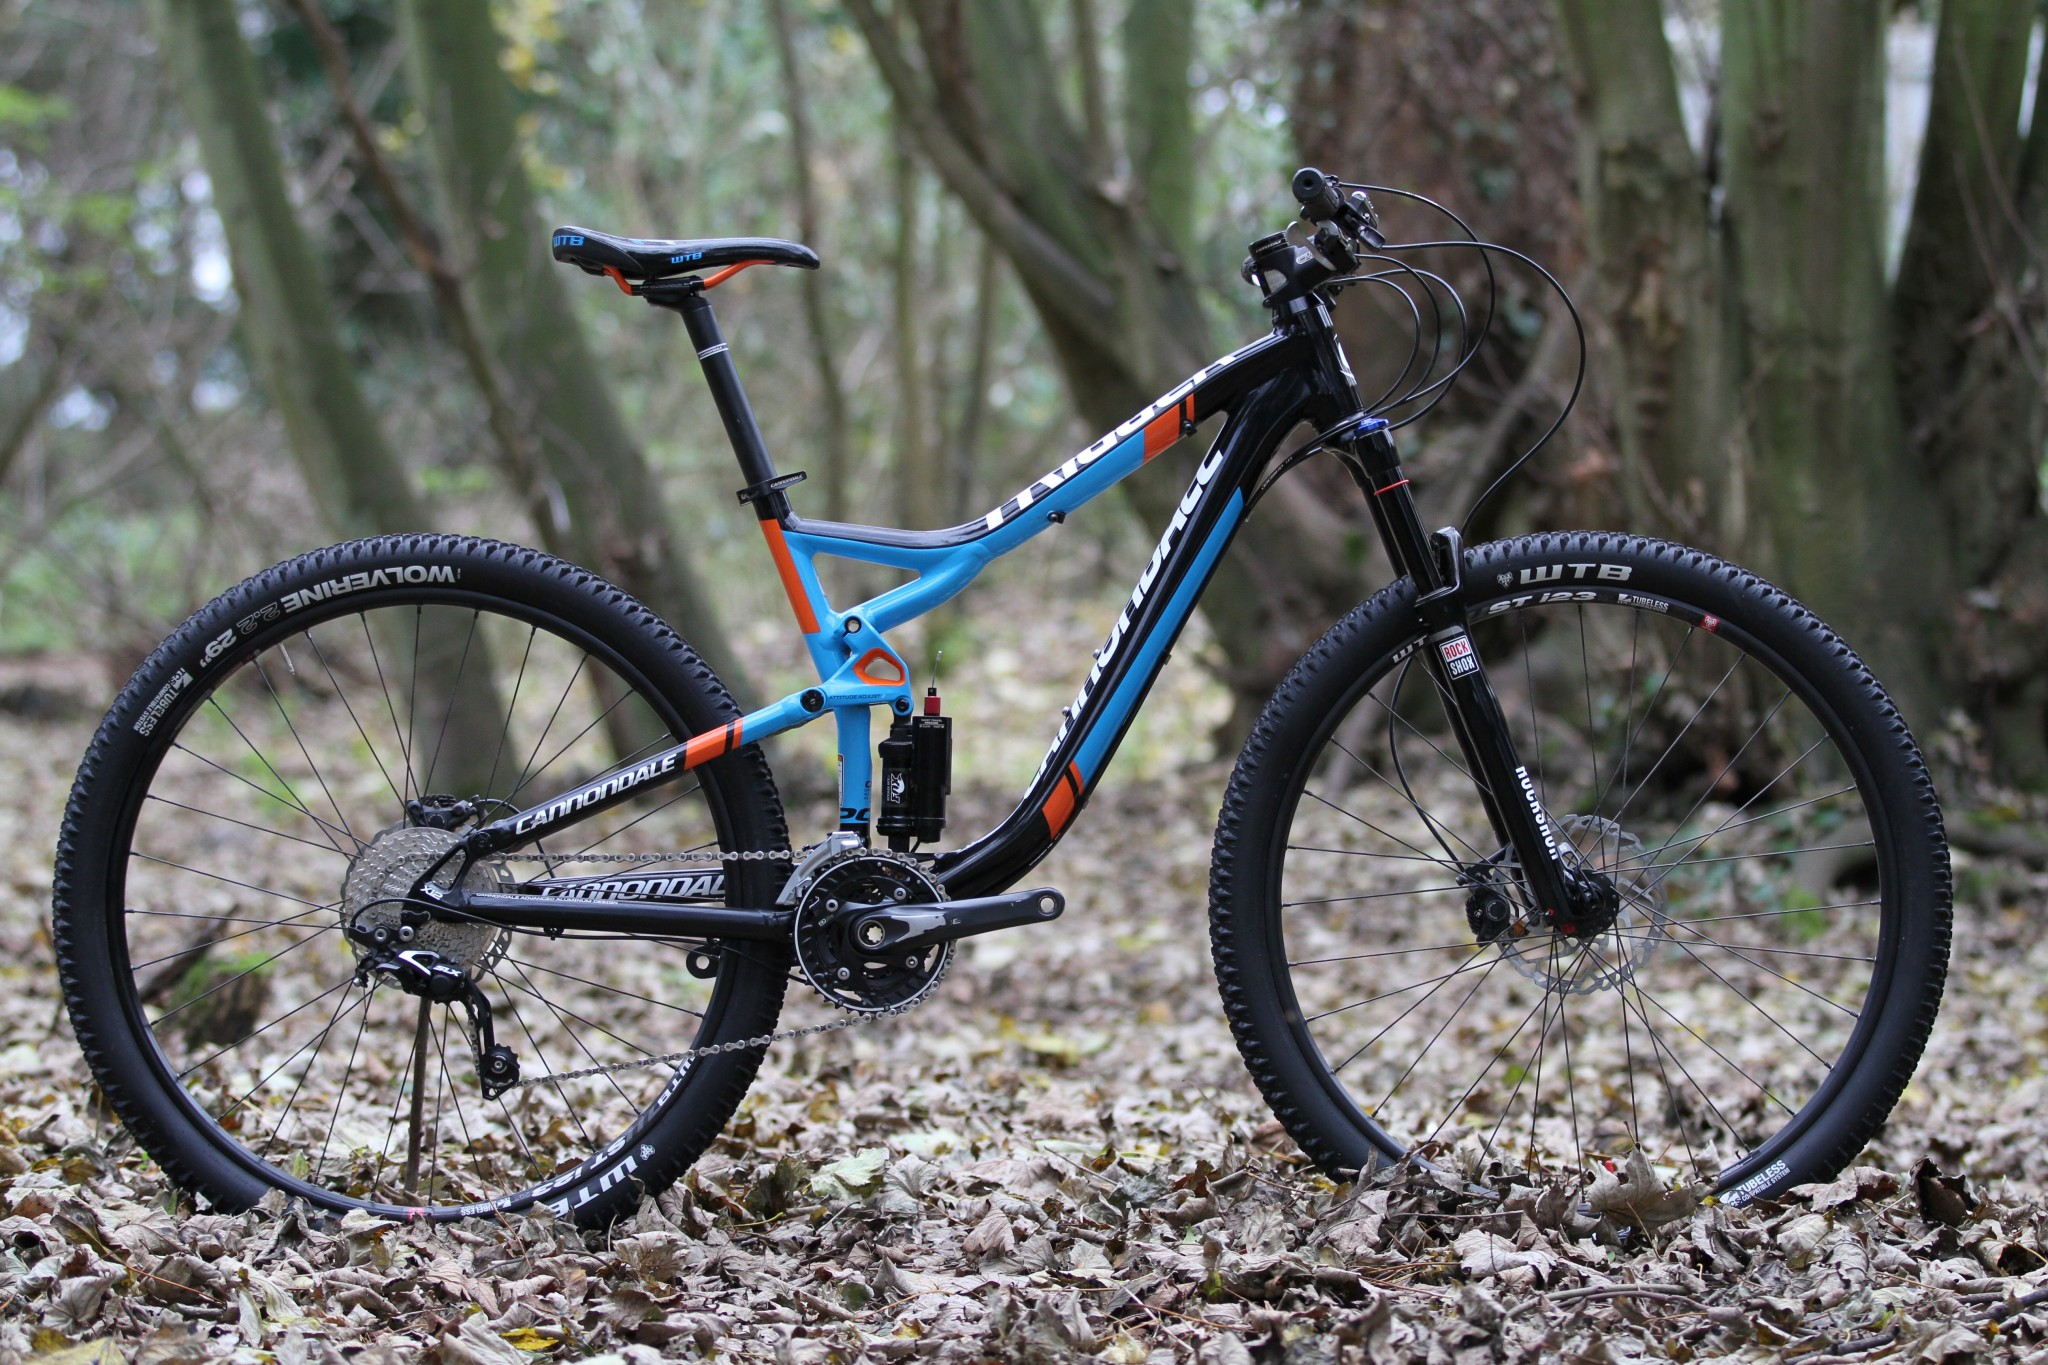 Cannondale Bicycles Trigger 29 4 2014 Reviews 187 Bikes